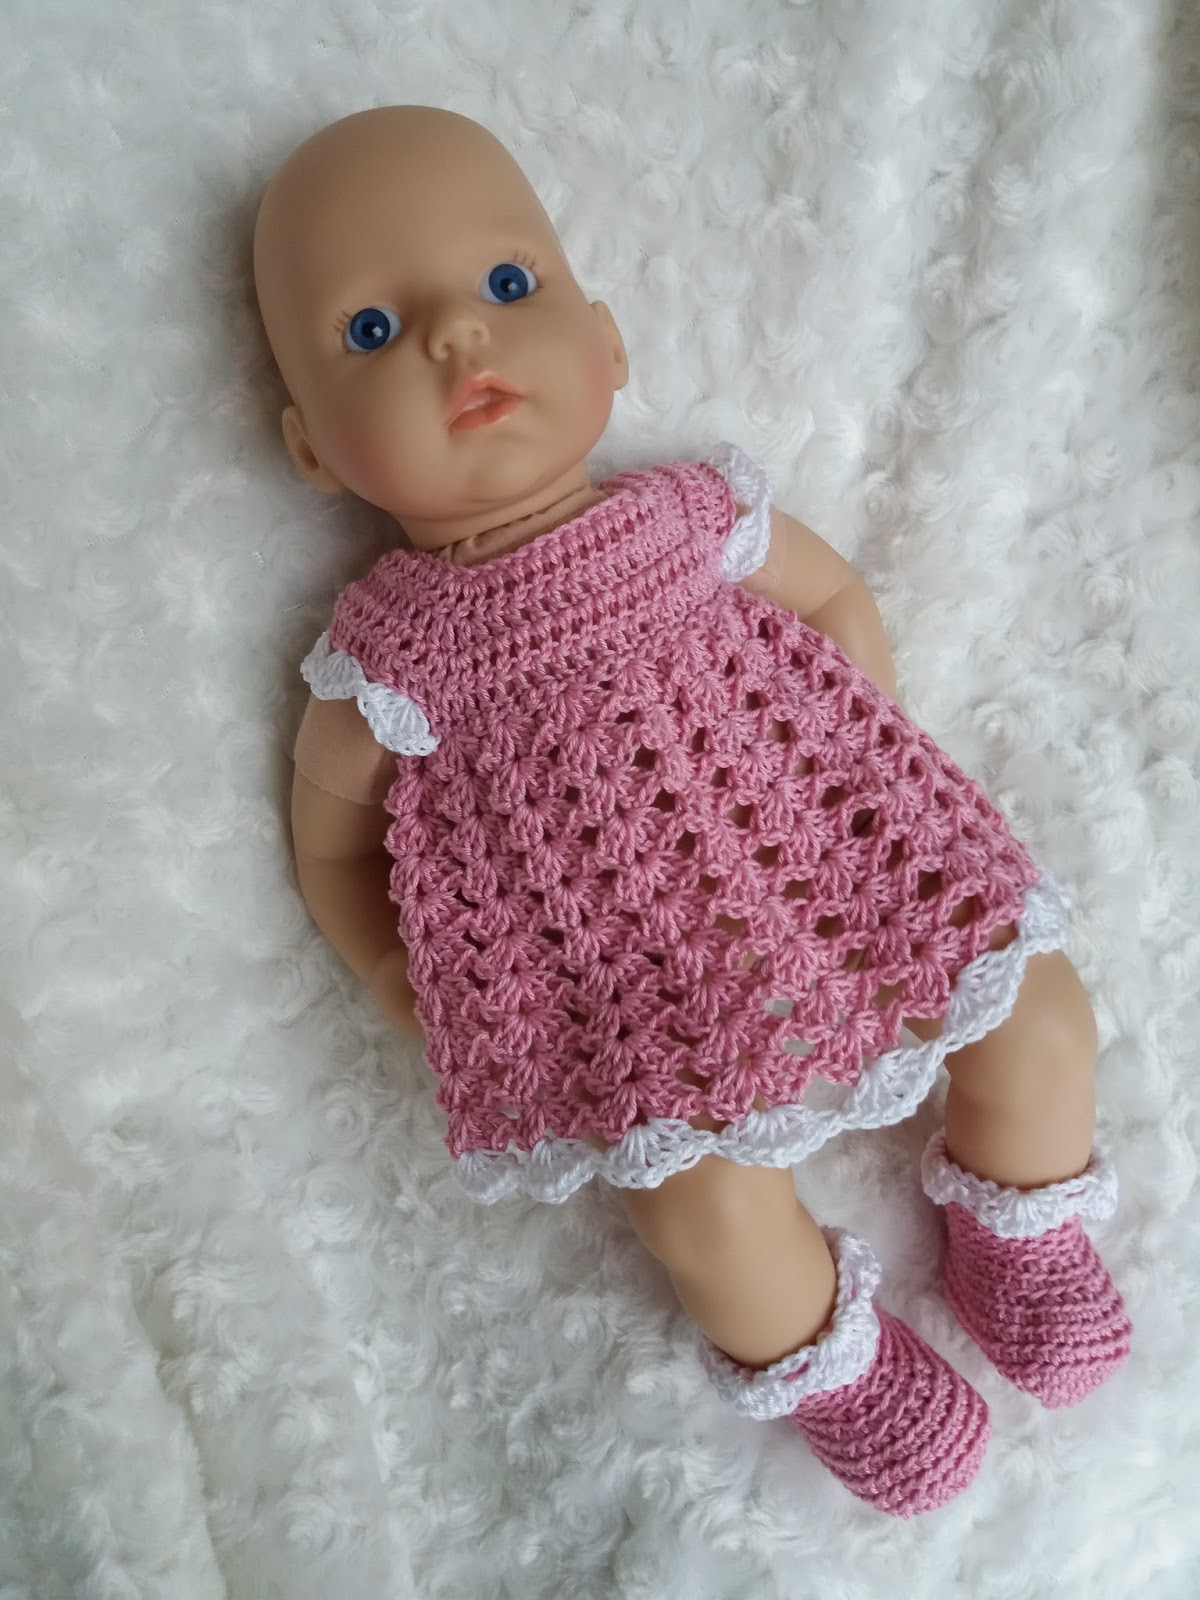 Linmary Knits: Annabell crochet dress and booties